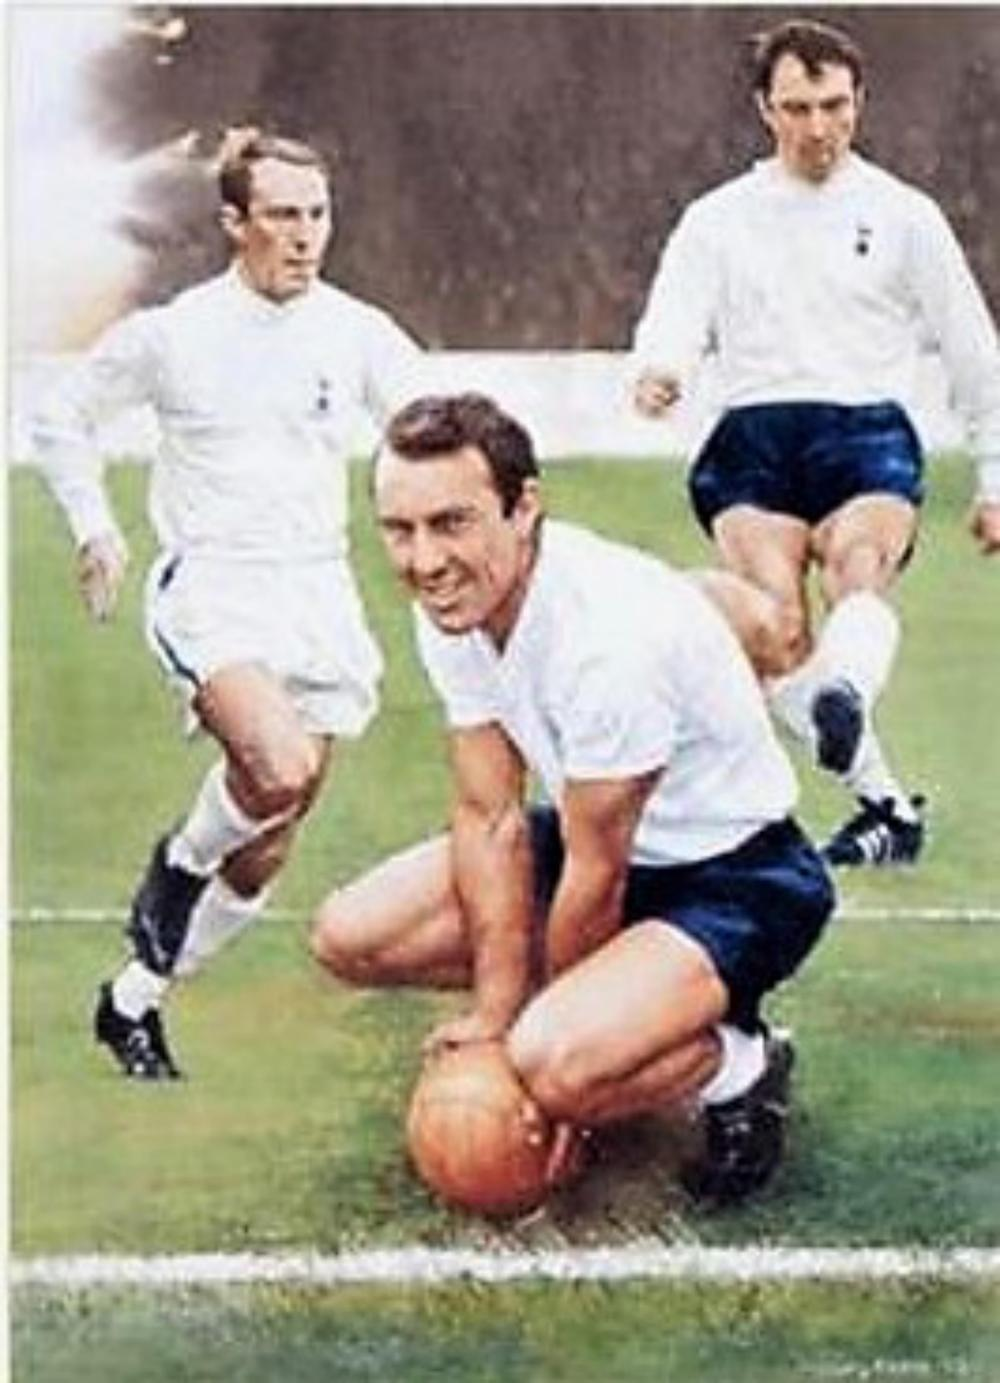 Lot 190; Spurs Jimmy Greaves signed limited fine art print + COA. This is one of a limited edition of 300